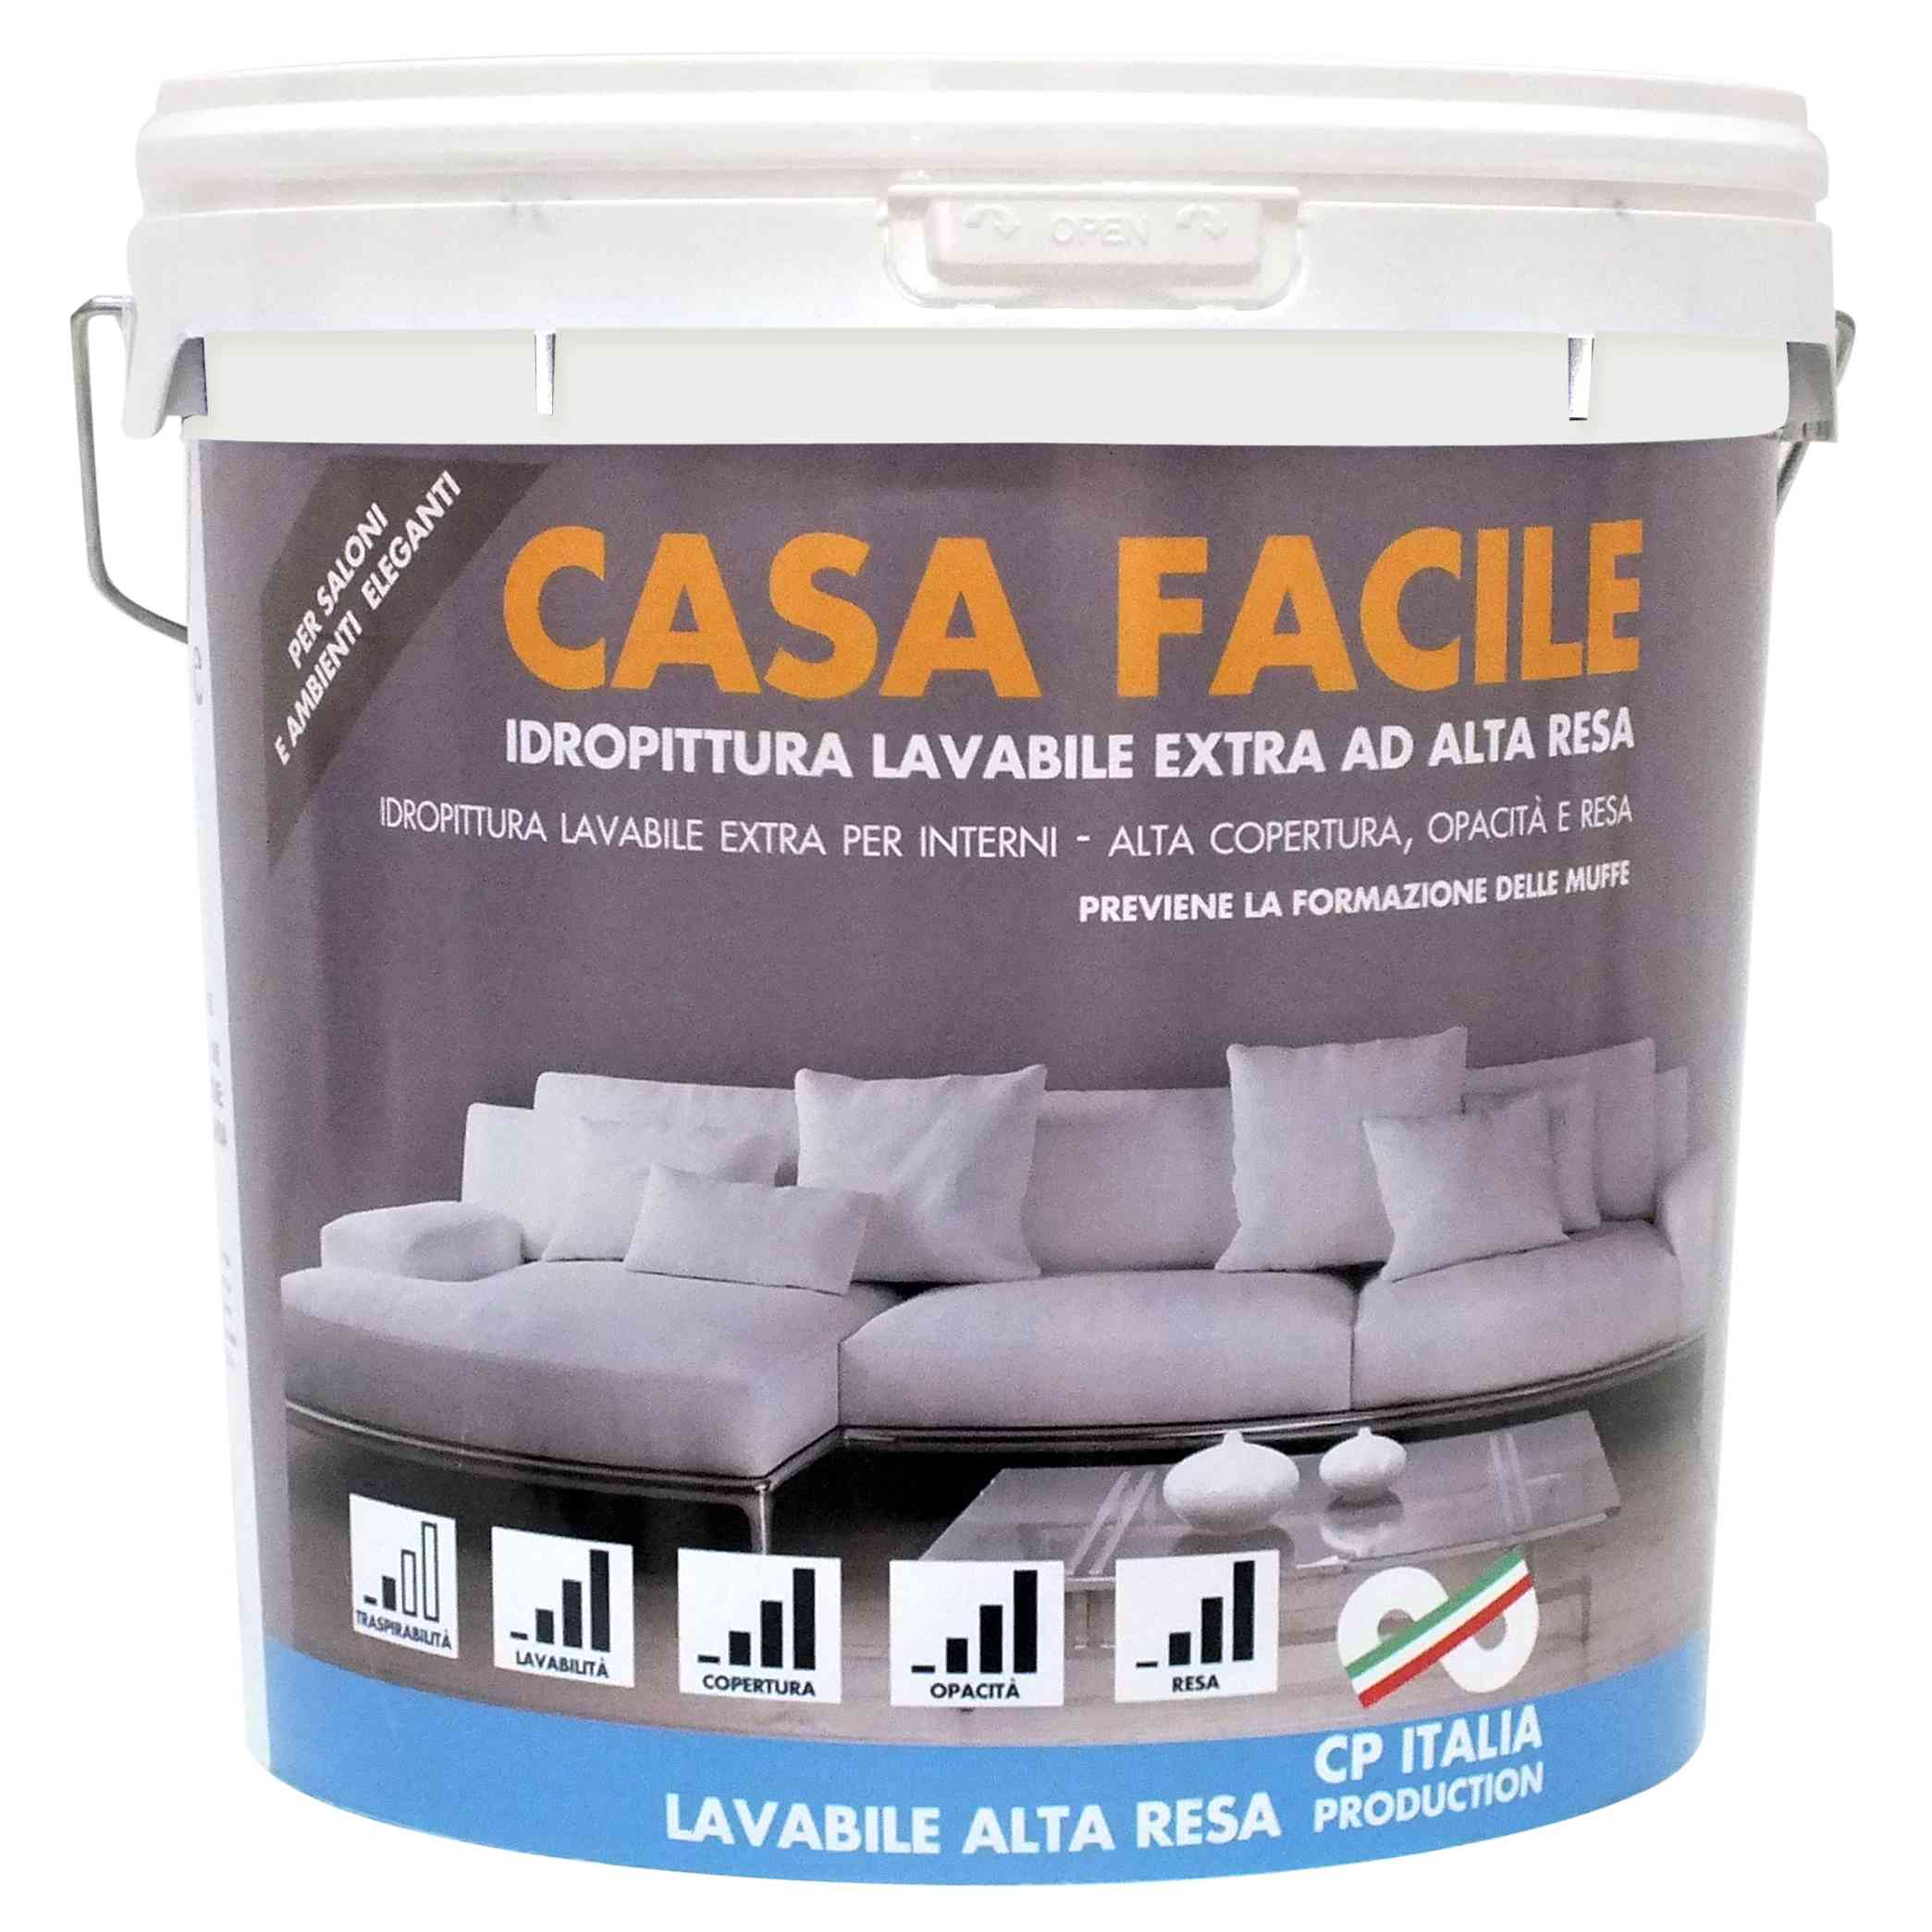 "1 PZ Di IDROPIT. SUPERLAVABILE ""CASA FACILE"" DA LT.14"